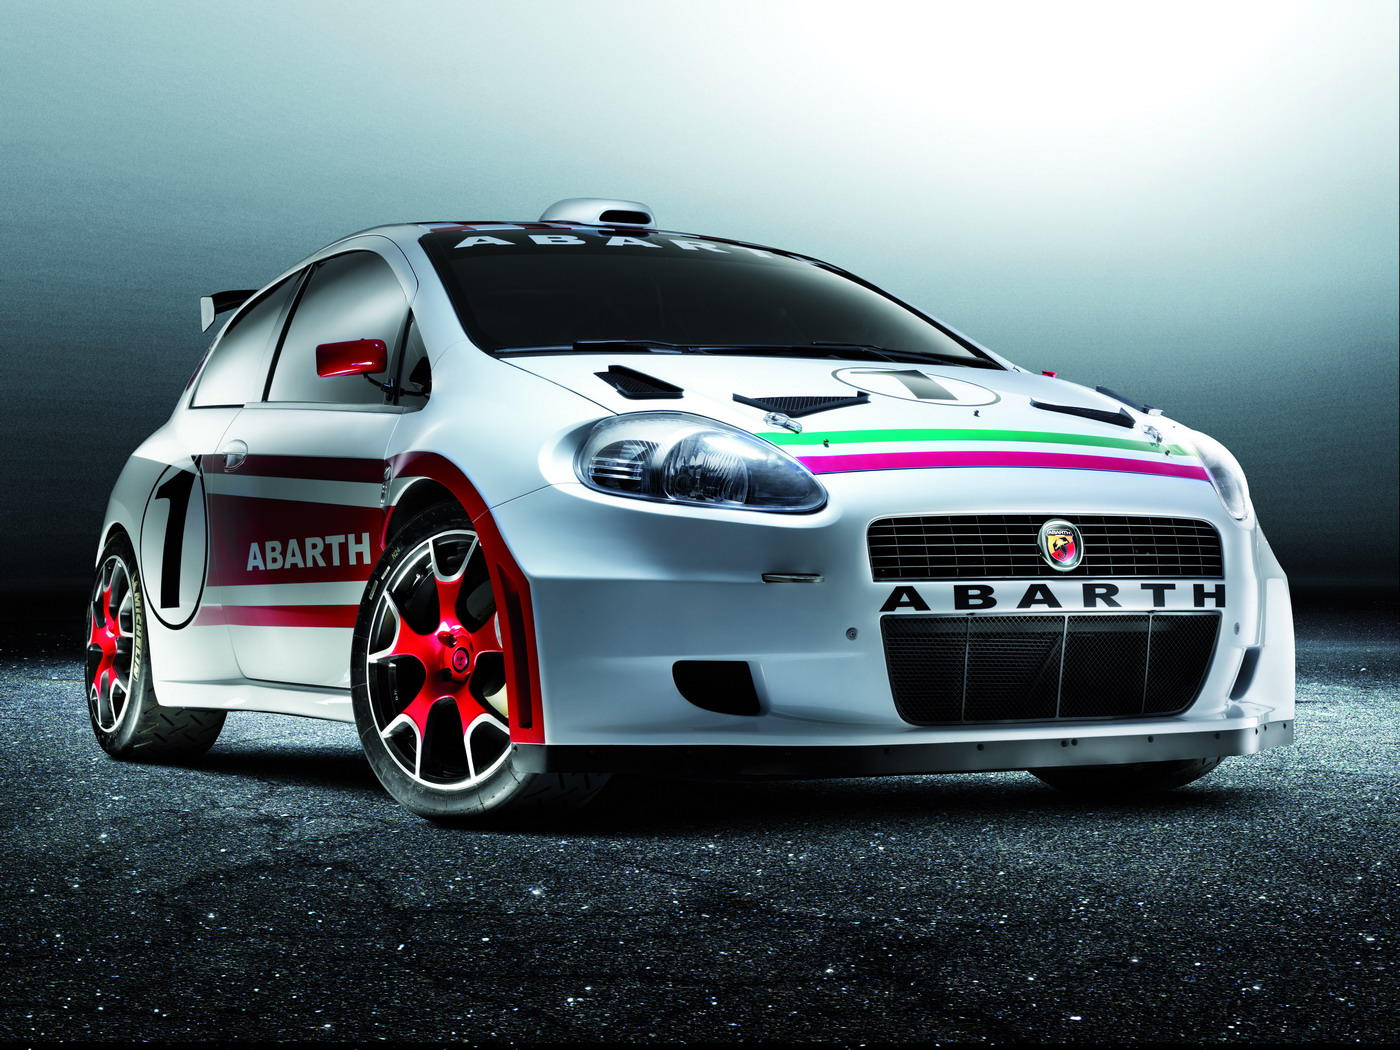 2007 fiat grande punto abarth s2000 review top speed. Black Bedroom Furniture Sets. Home Design Ideas